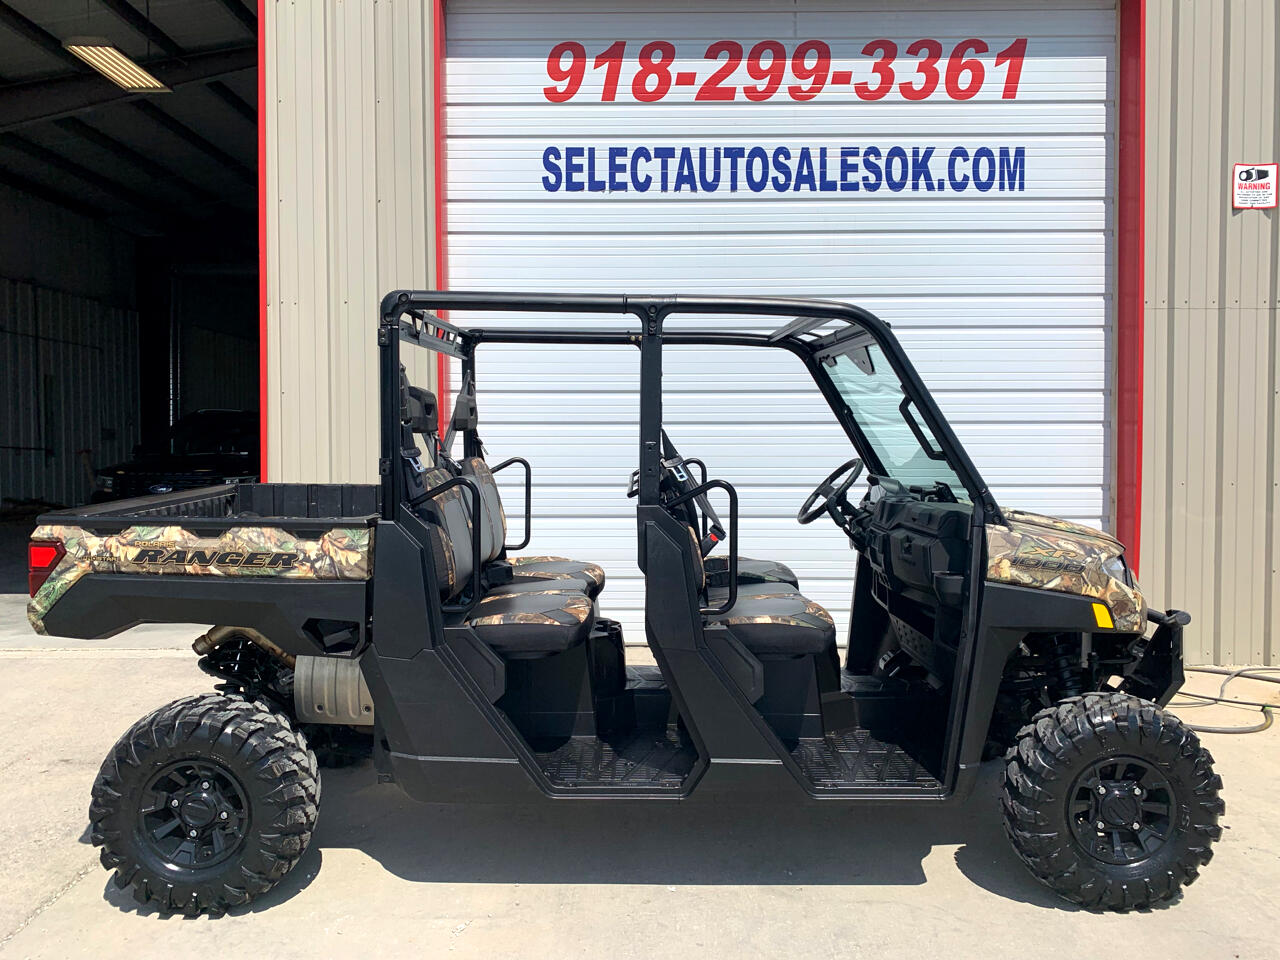 2019 Polaris Ranger CREW 1000 XP EPS